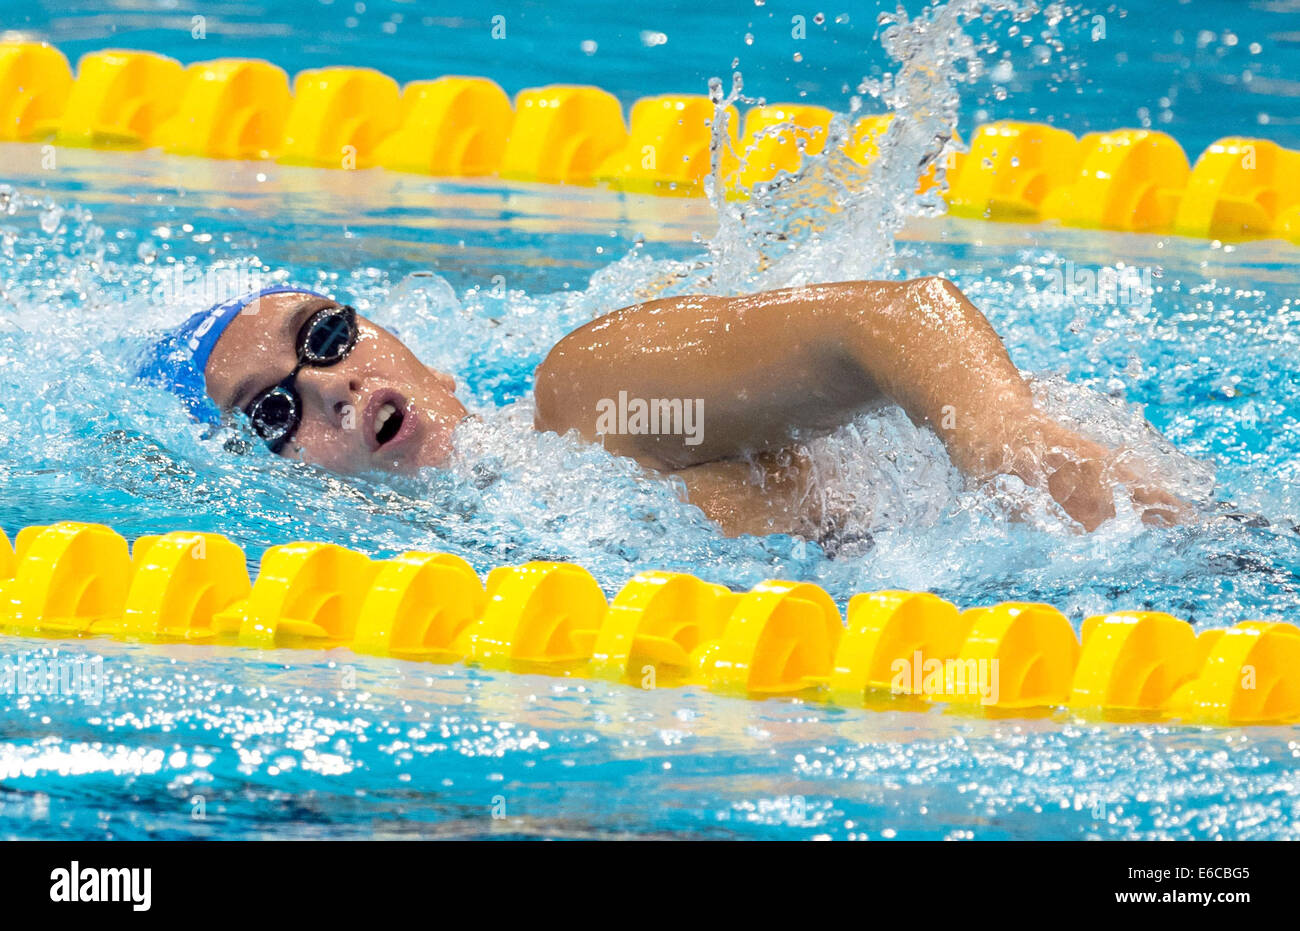 Berlin, Germany. 20th Aug, 2014. Anna-Marie Benesova from the Czech Republik competes in the womens 800m freestyle - Stock Image